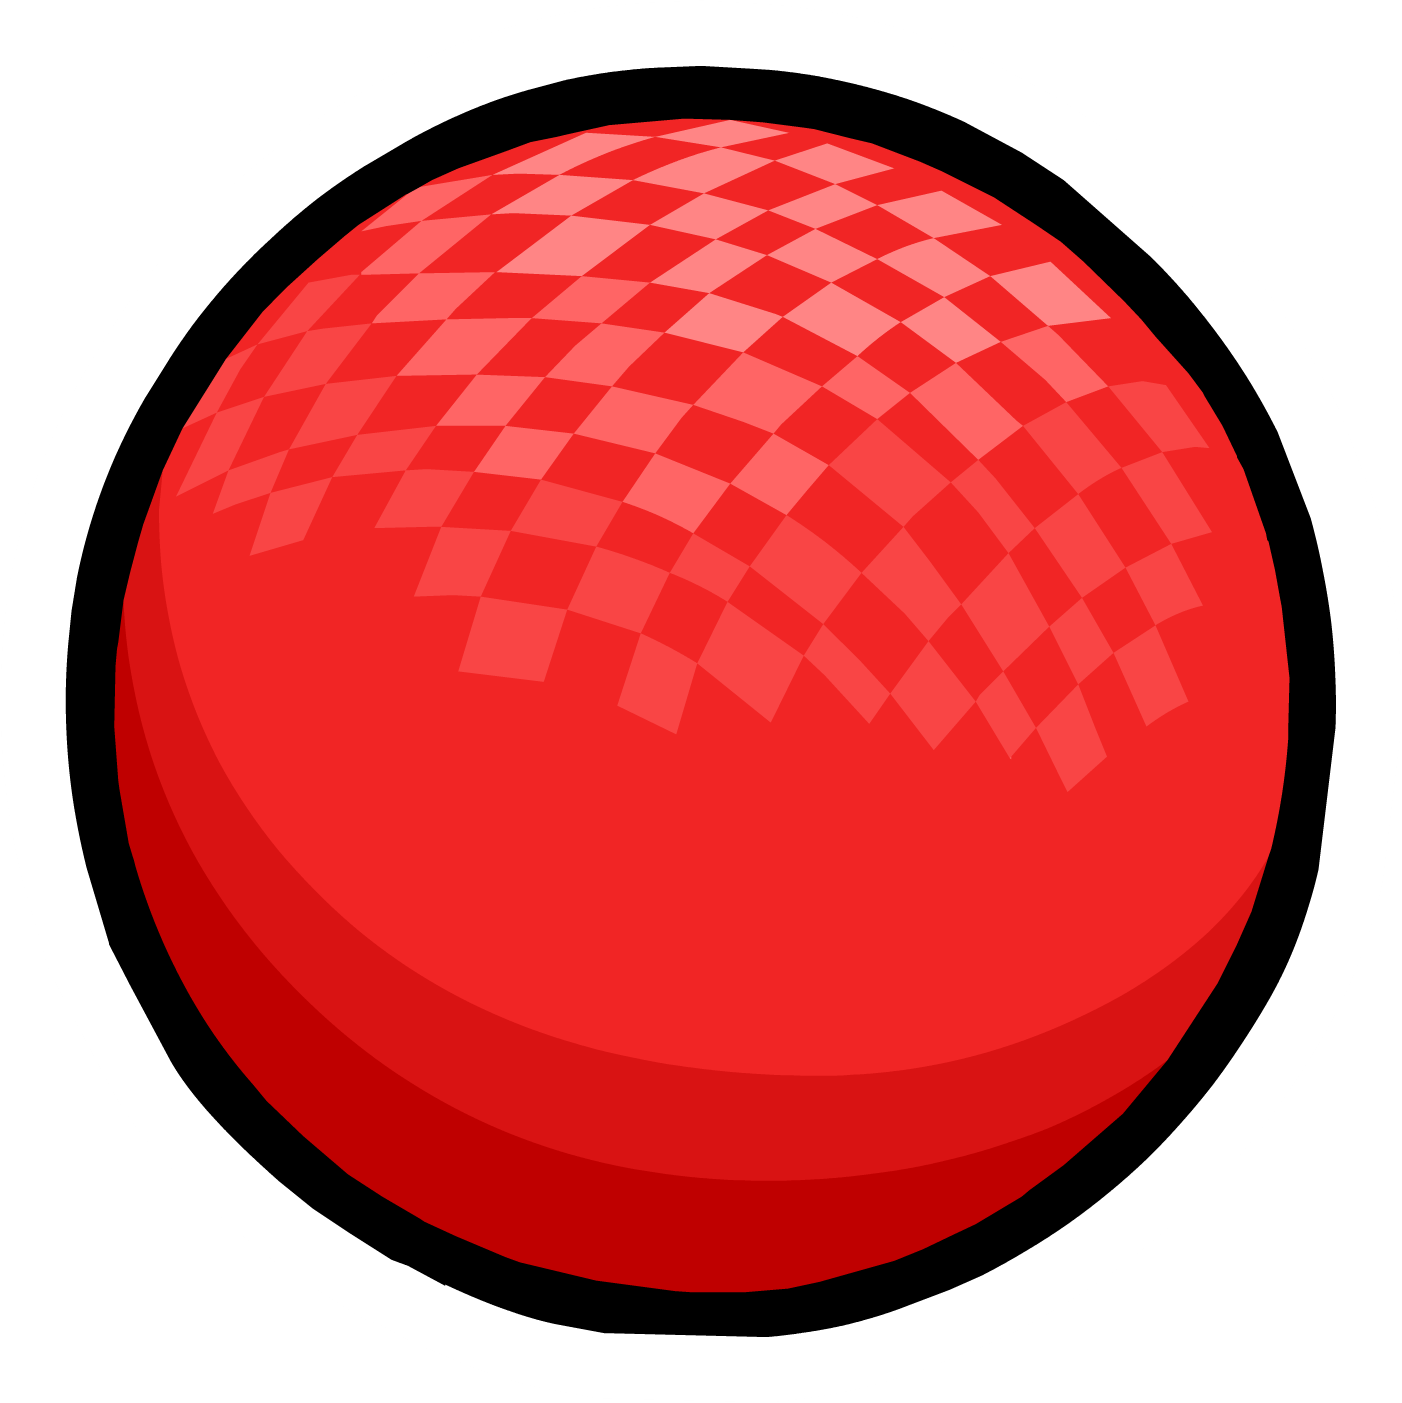 dodgeball vector small